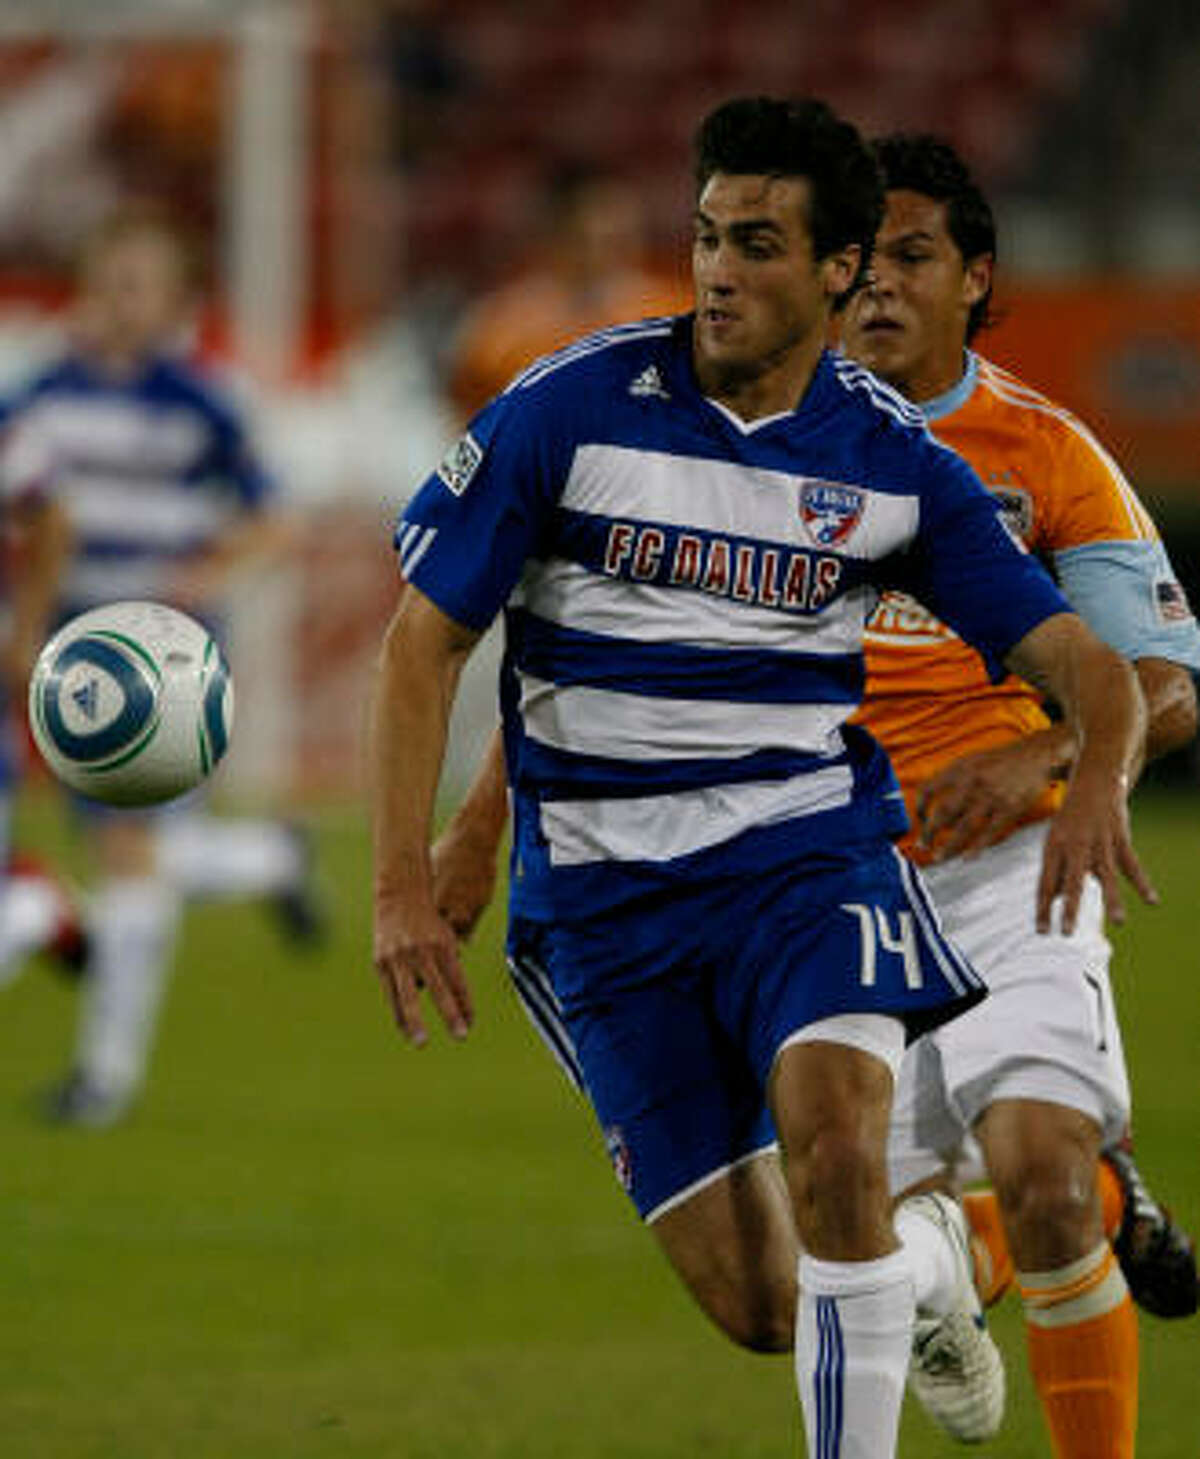 FC Dallas midfielder George John tries to keep control of the ball as Dynamo forward Luis Angel Landin persecutes in the first half.